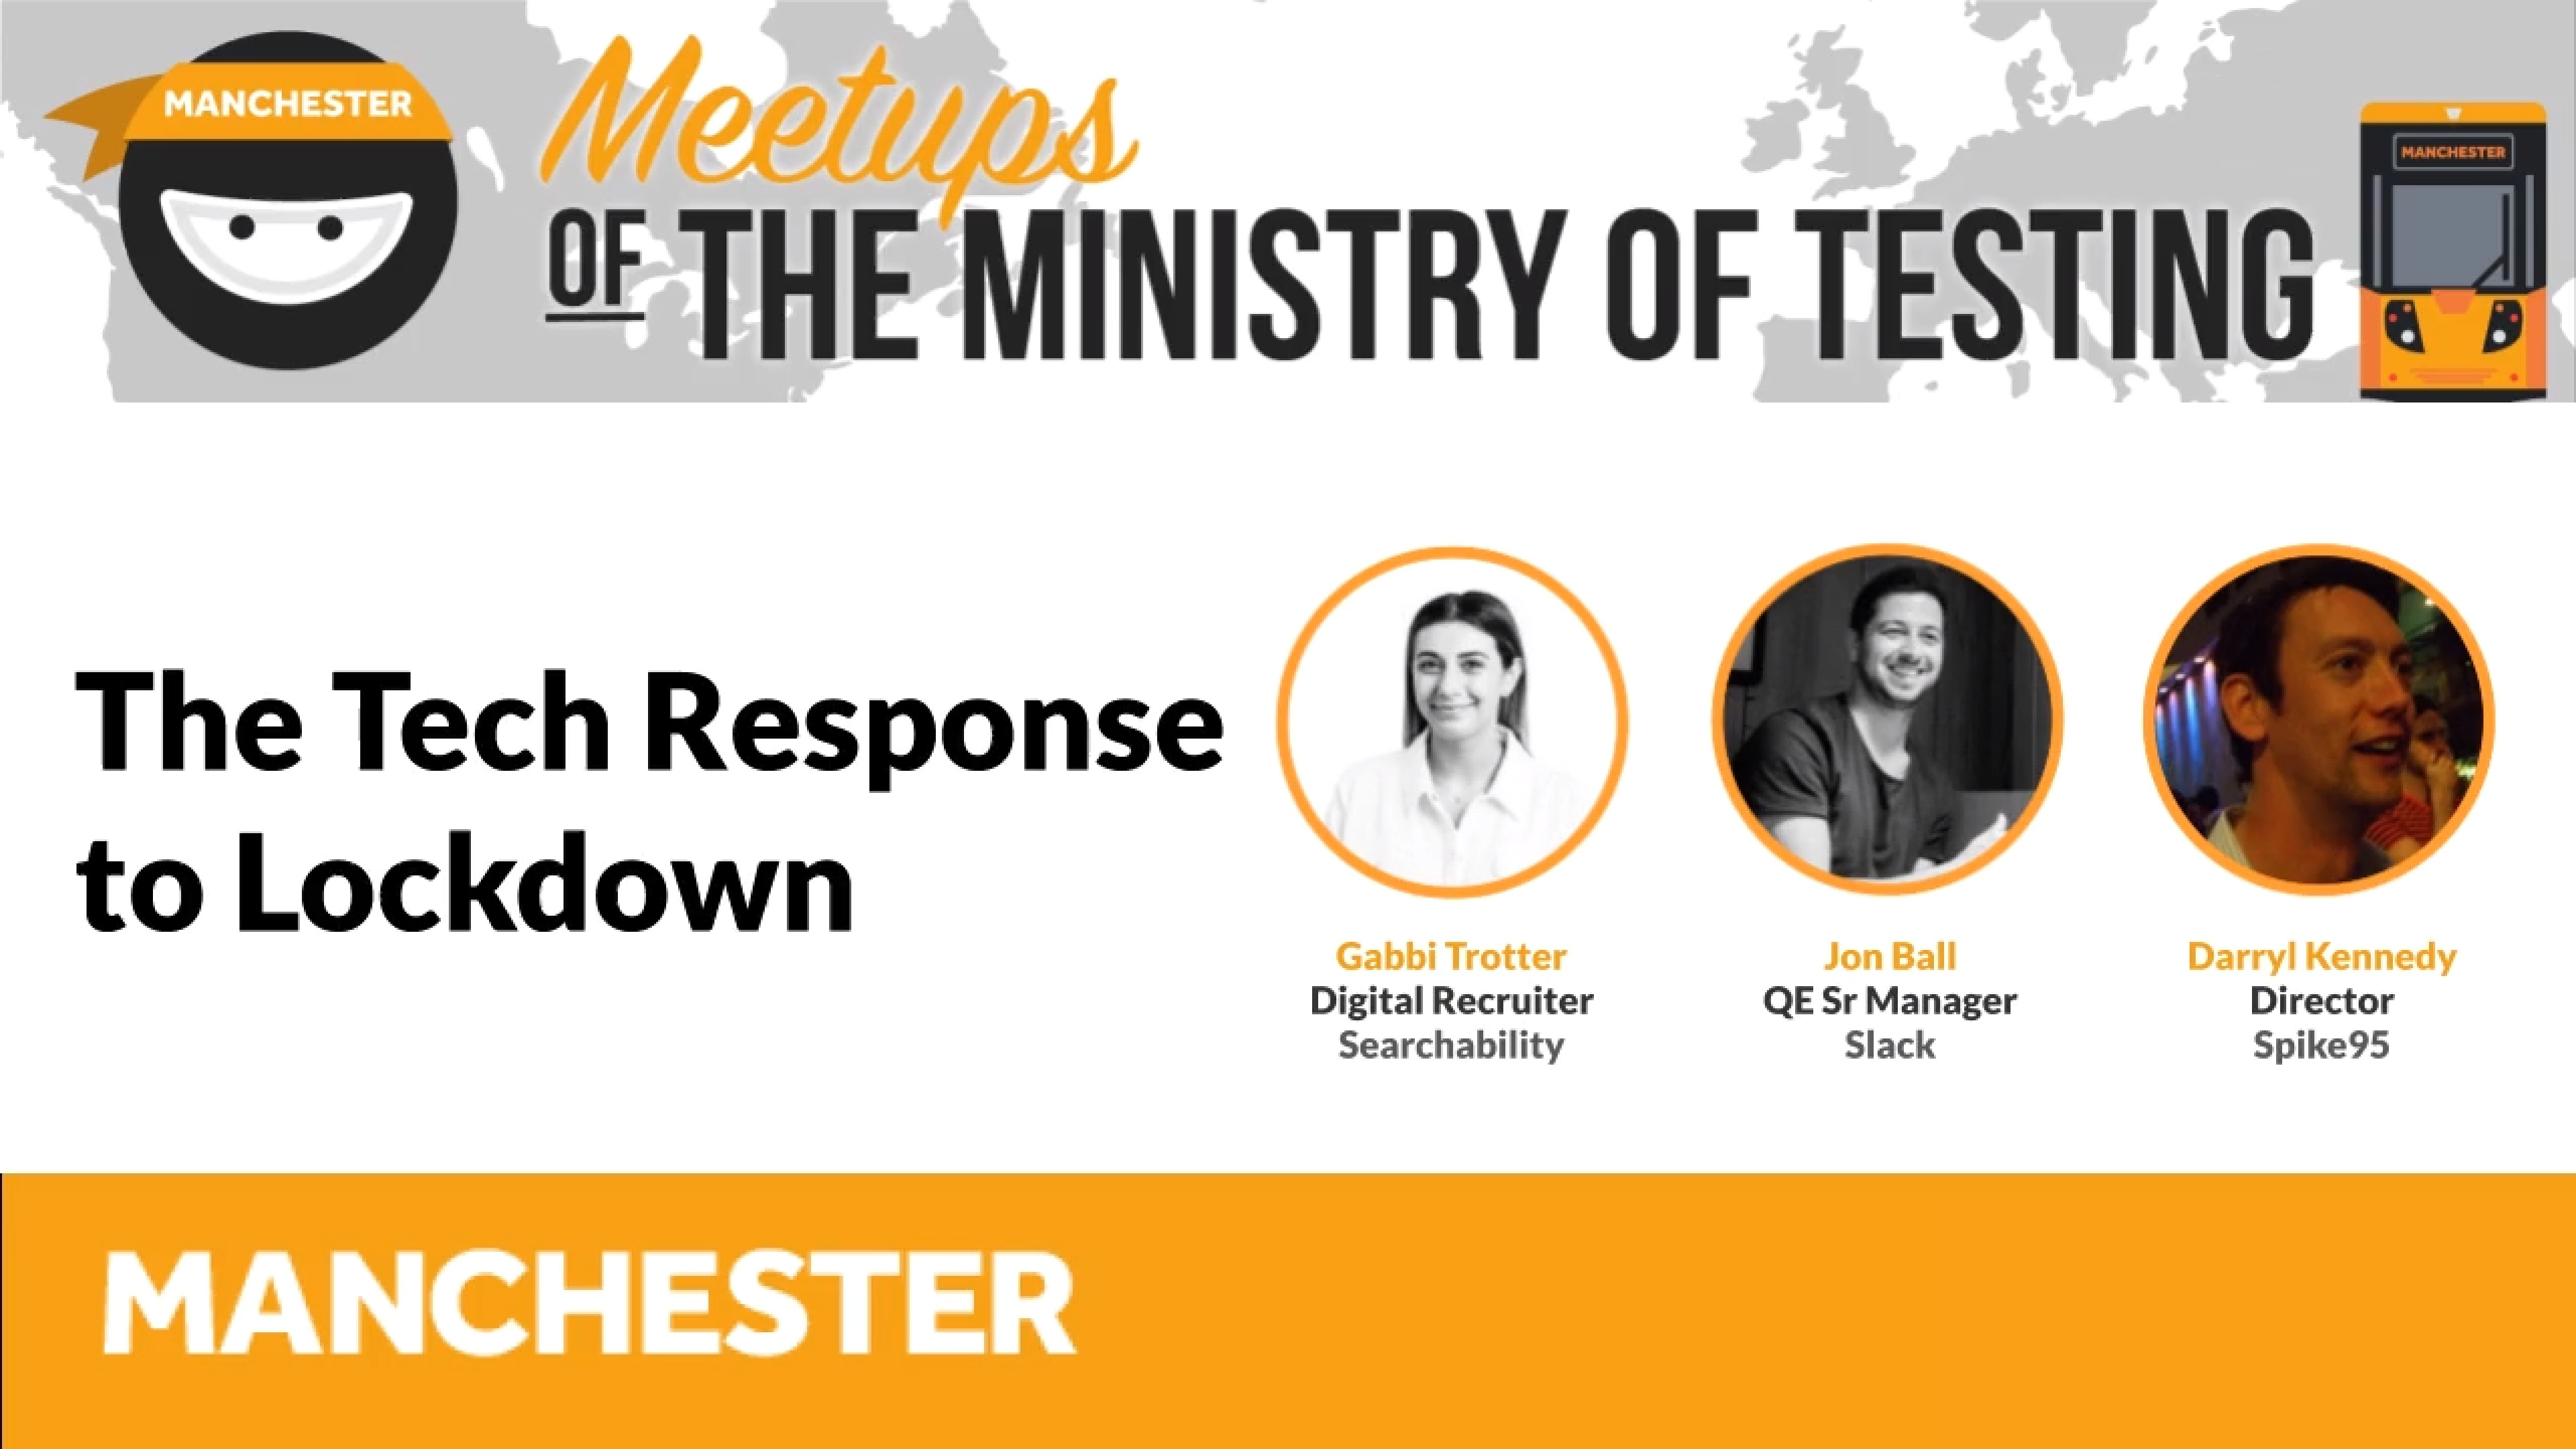 The Tech Response to Lockdown with MoT Manchester